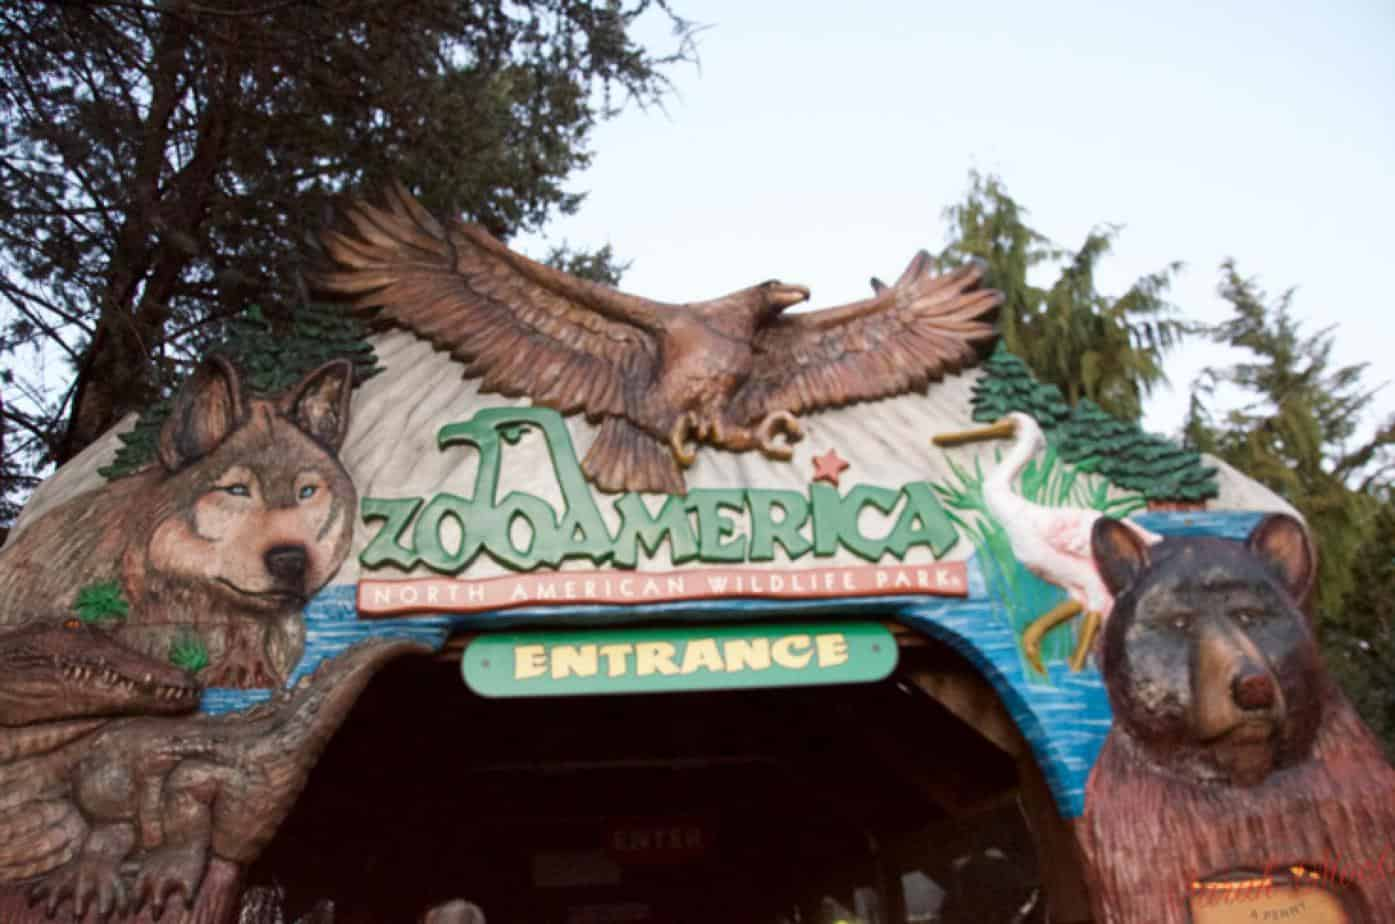 entrance to zooAmerica